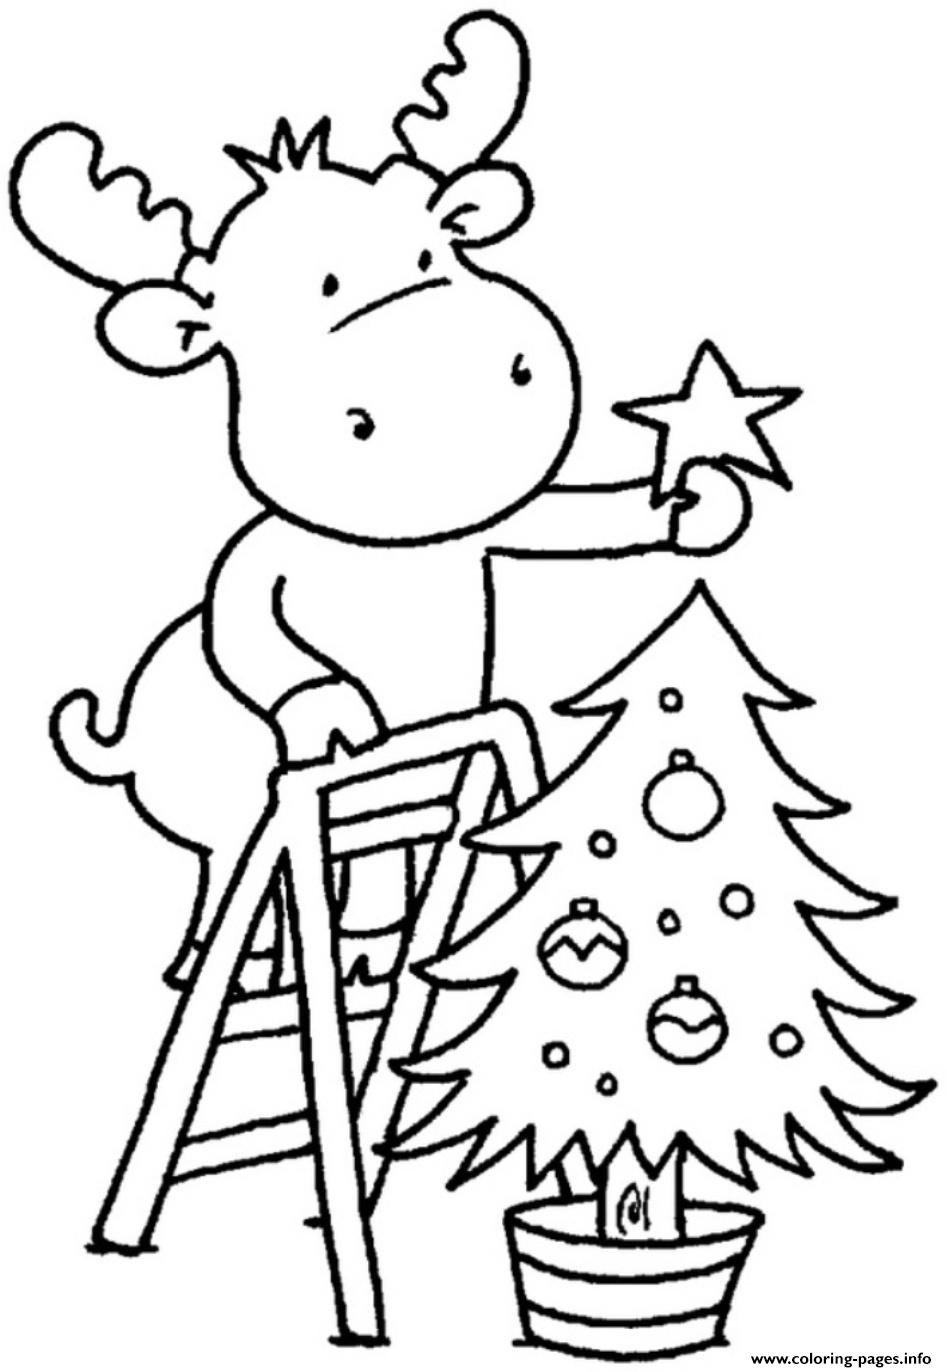 Best ideas about Free Christmas Printable Coloring Sheets For Kids . Save or Pin Christmas Tree For Children Coloring Pages Printable Now.